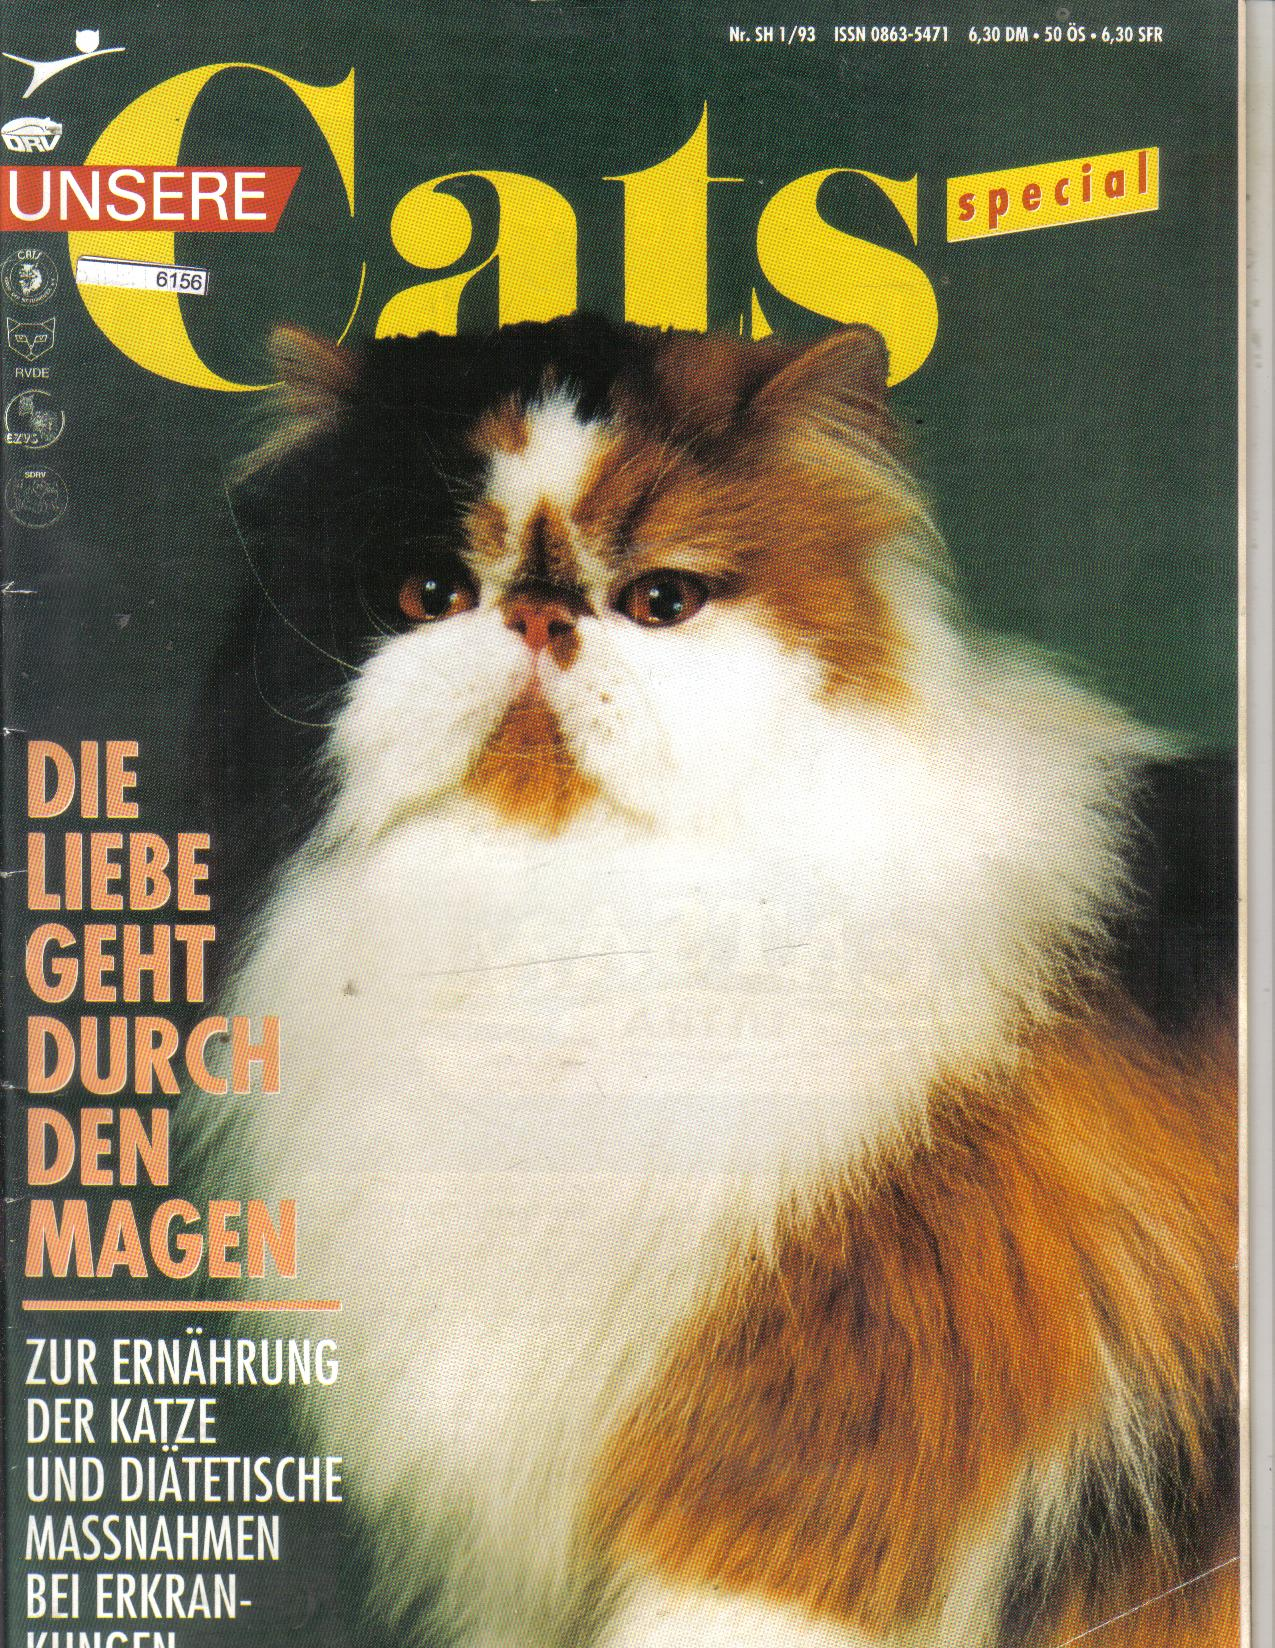 Unsere Cats special